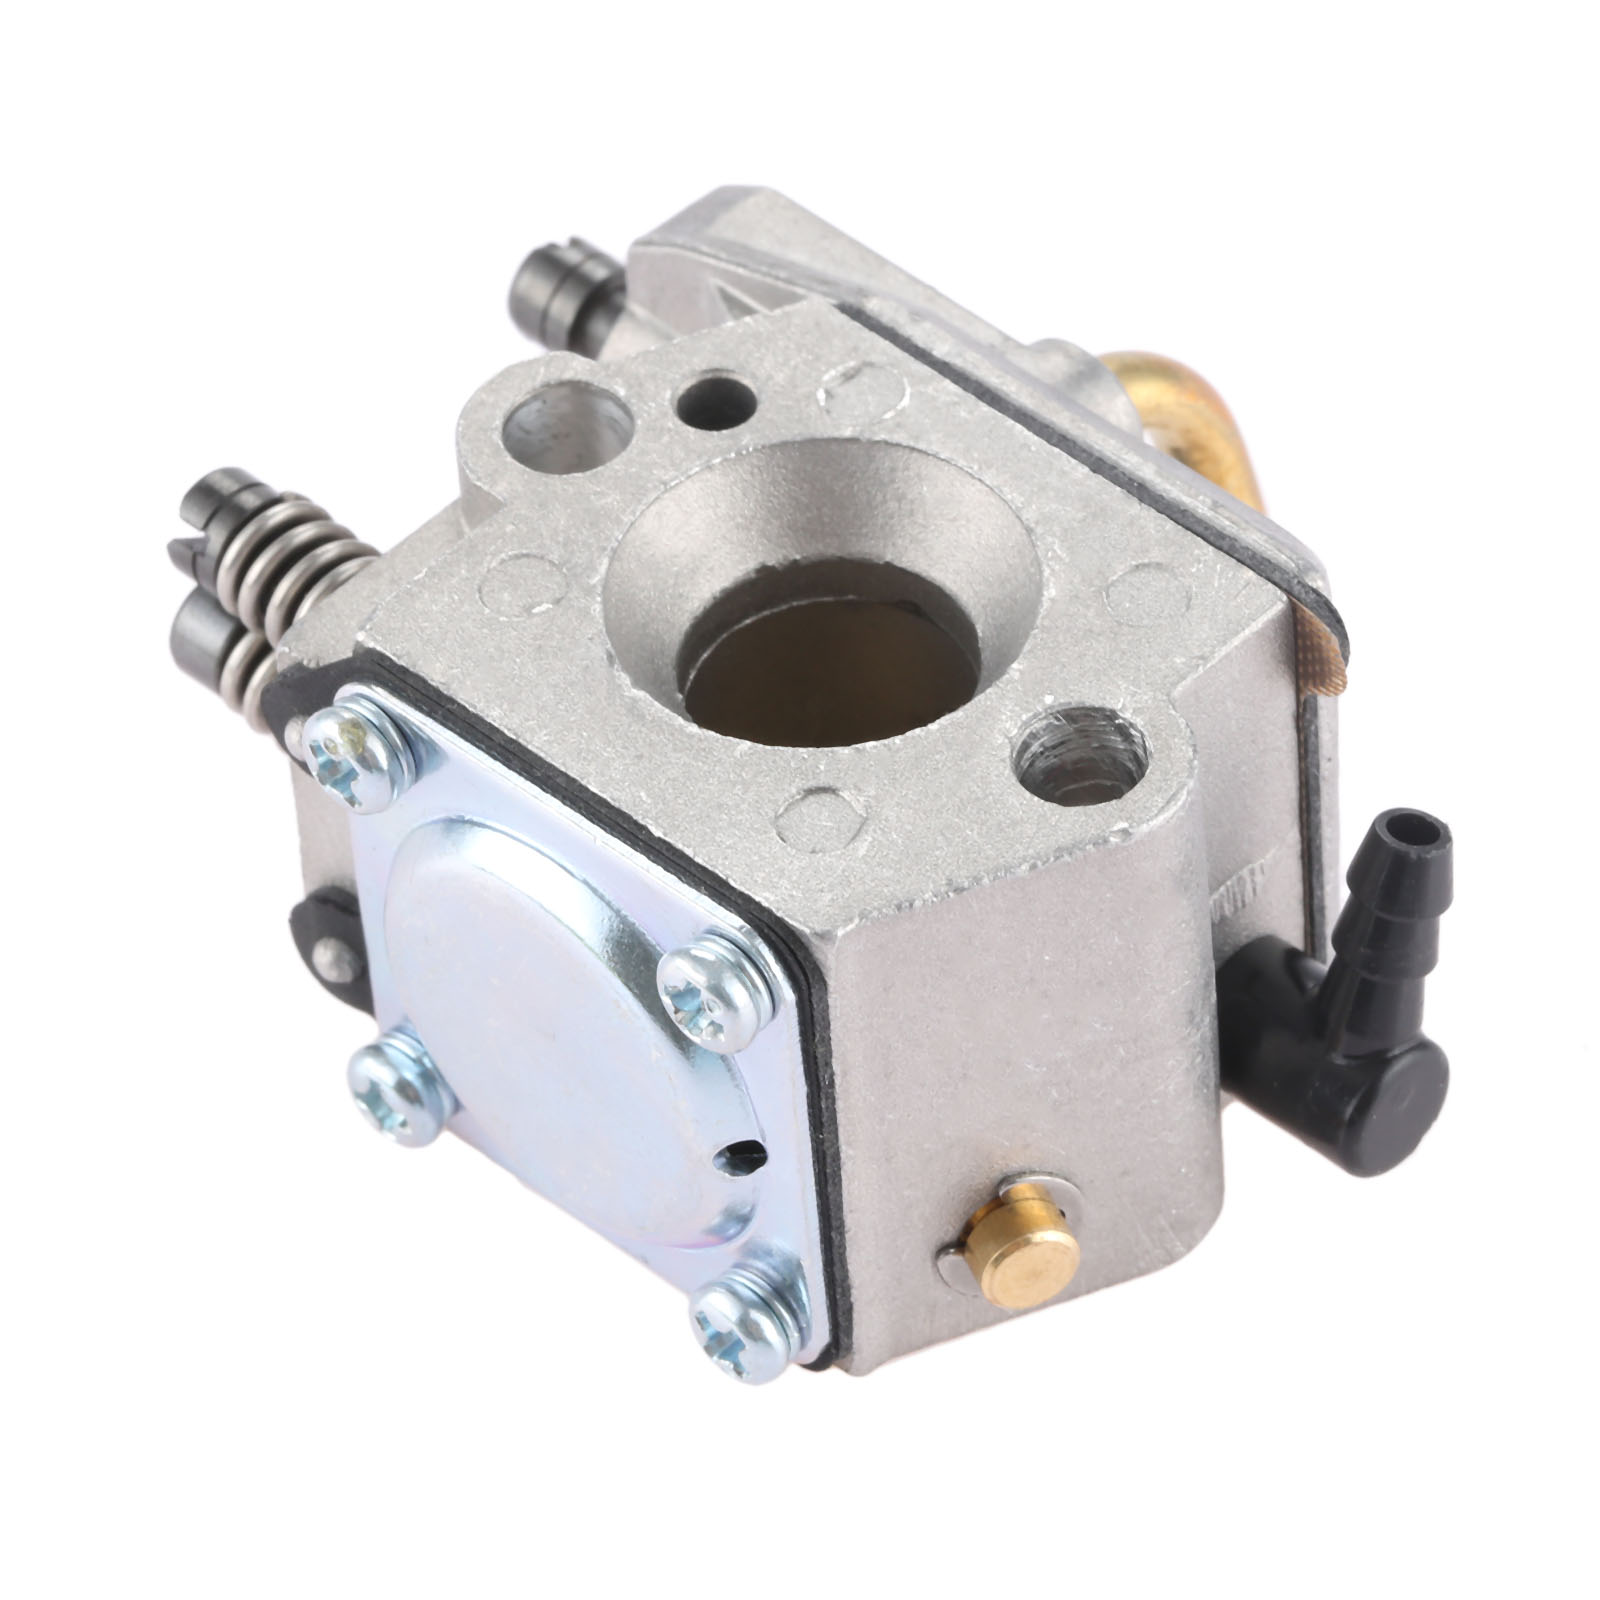 Image 4 - DRELD Carburetor For Stihl 024 026 MS240 MS260 024AV 024S Chainsaw 1121 120 0611 Replace OEM Walbro WT 194 WT 194 1 wt 22 Carb-in Chainsaws from Tools